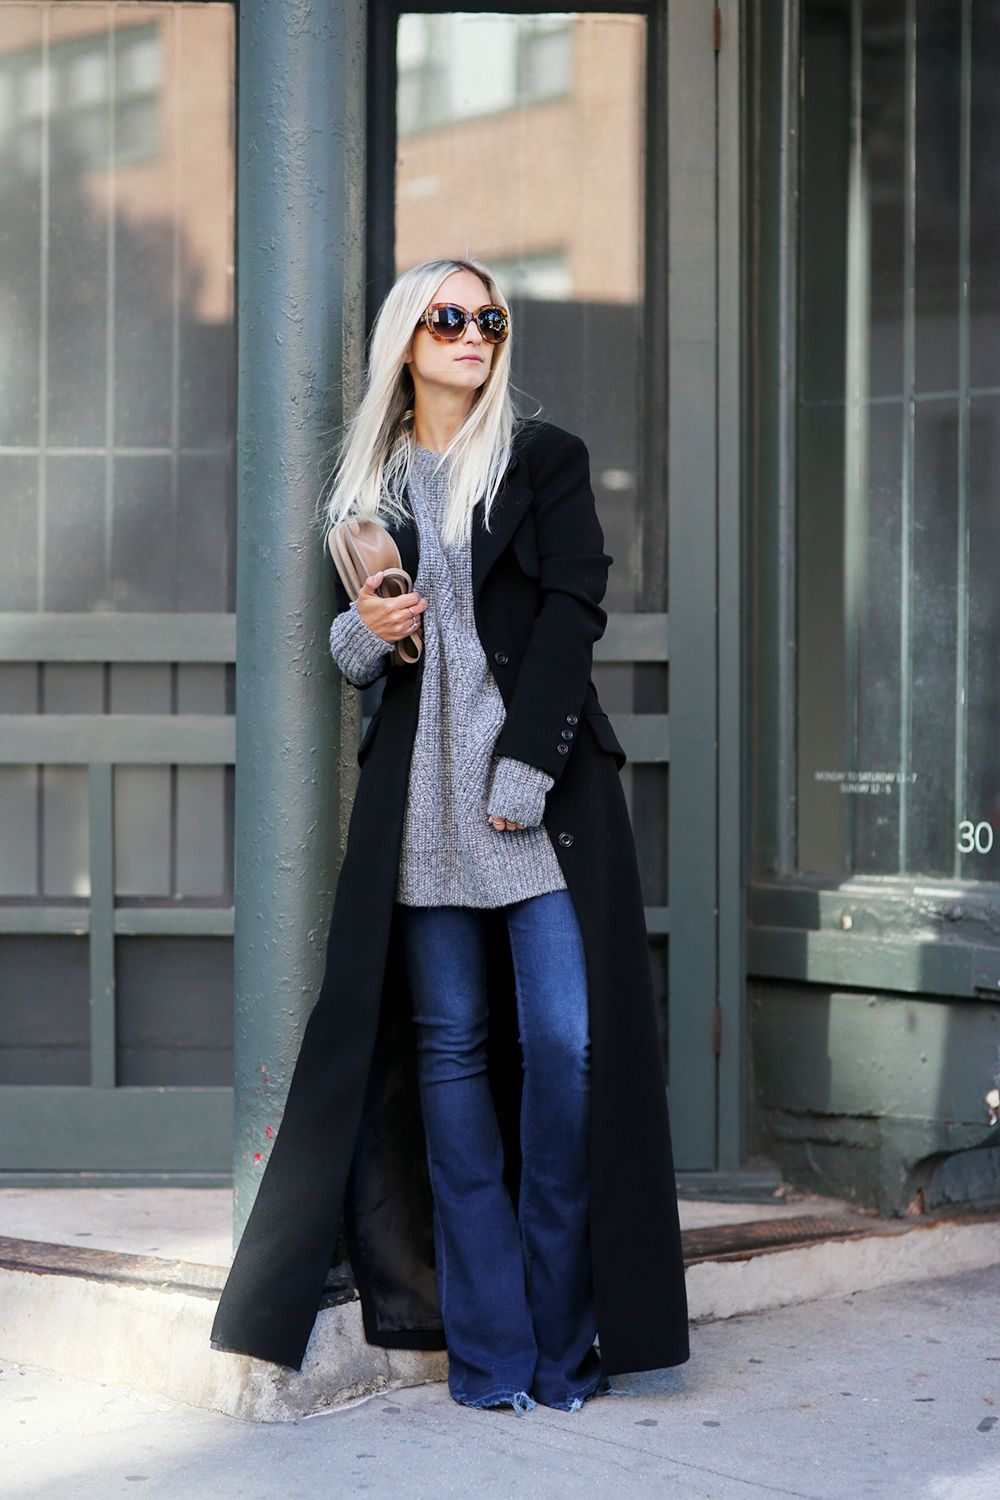 Dare To Go All Out In A Floor Length Maxi Coat This Winter! Charlotte  Groeneveld